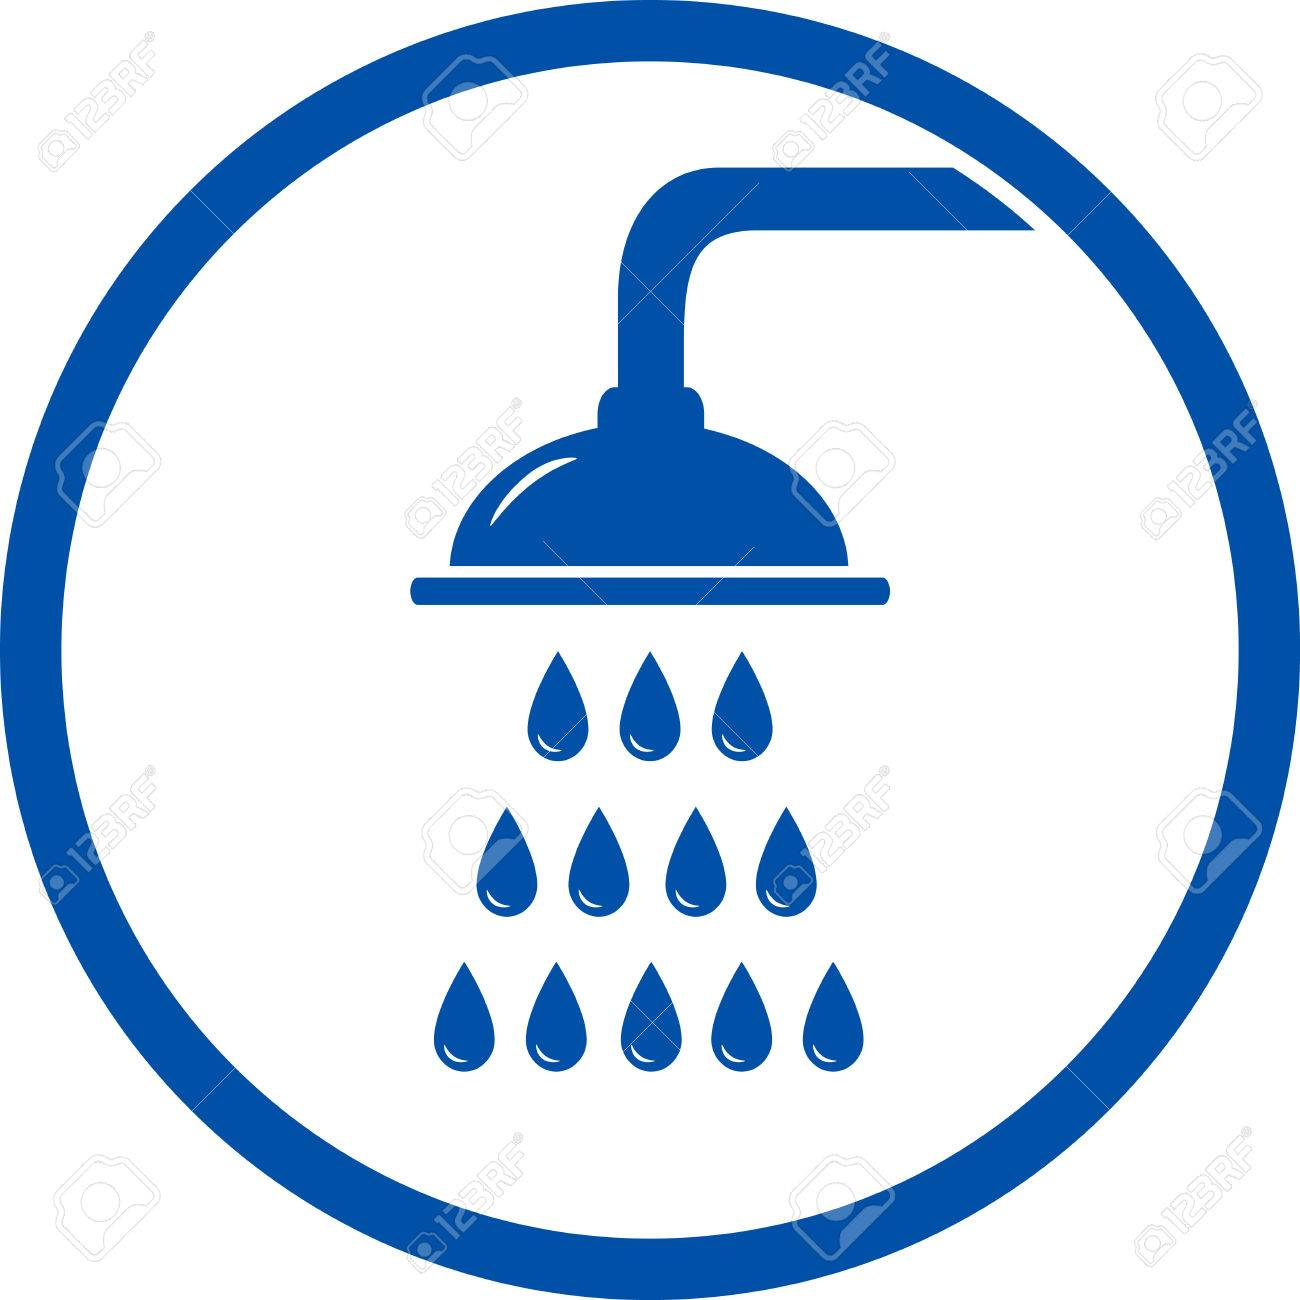 shower head icon with water droplet in frame Stock Vector - 29697807